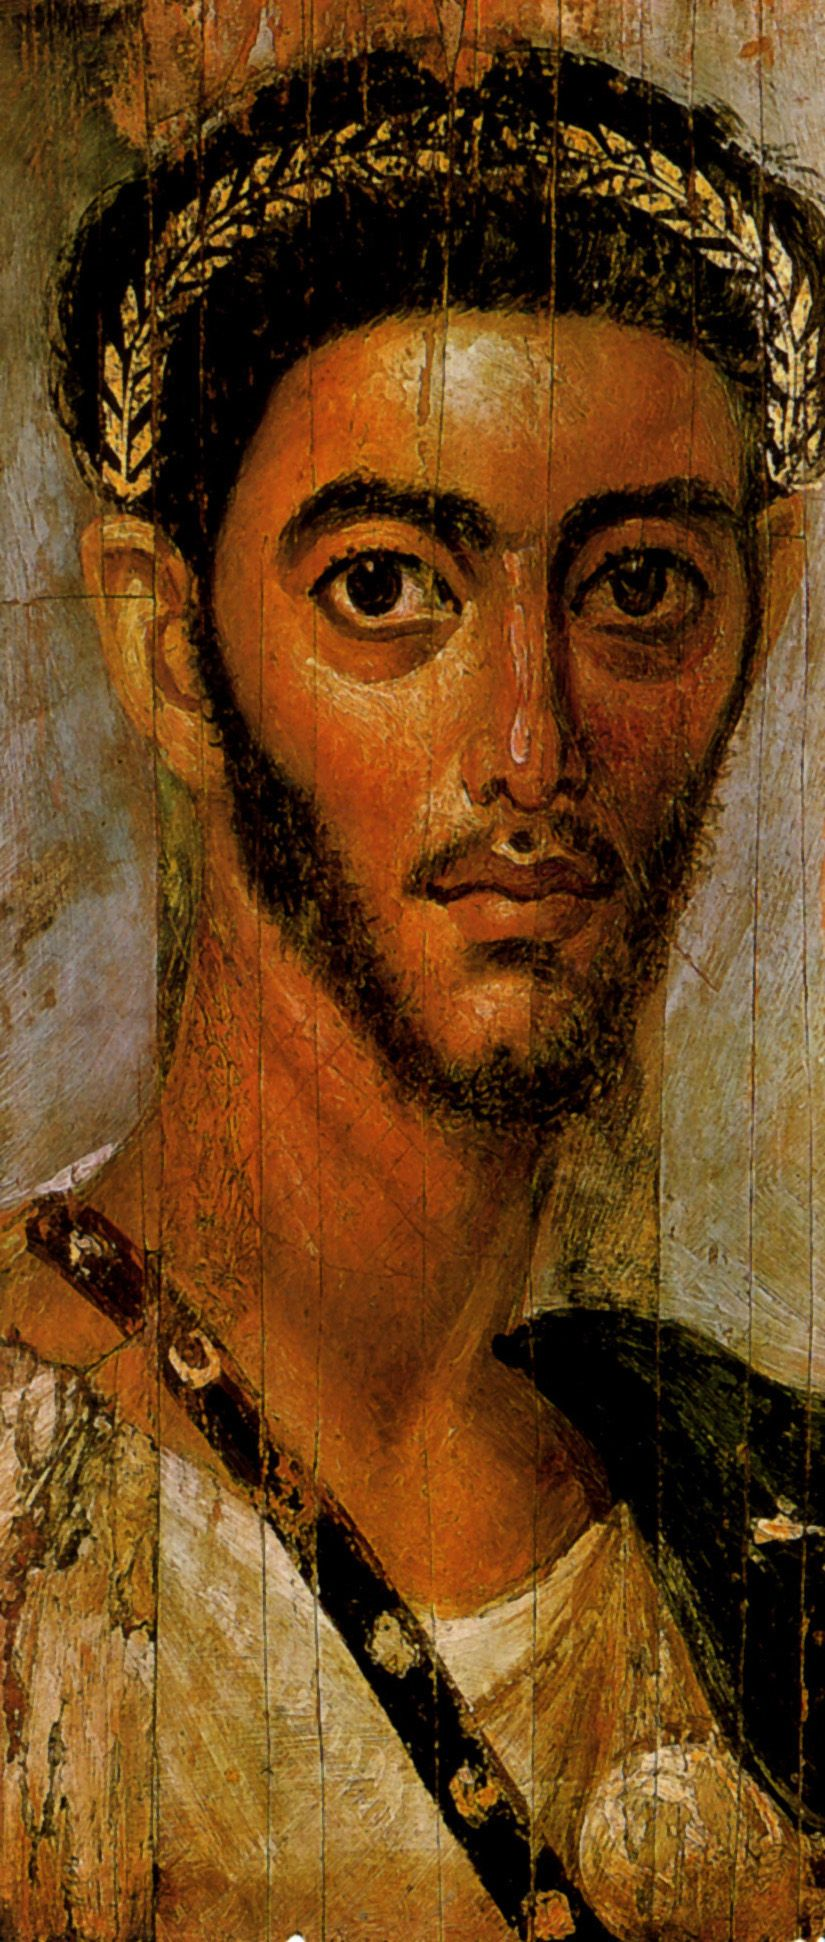 Pittura Romana Fayum Pin By Fosterginger On Art Roman Fayum Mummy Portraits